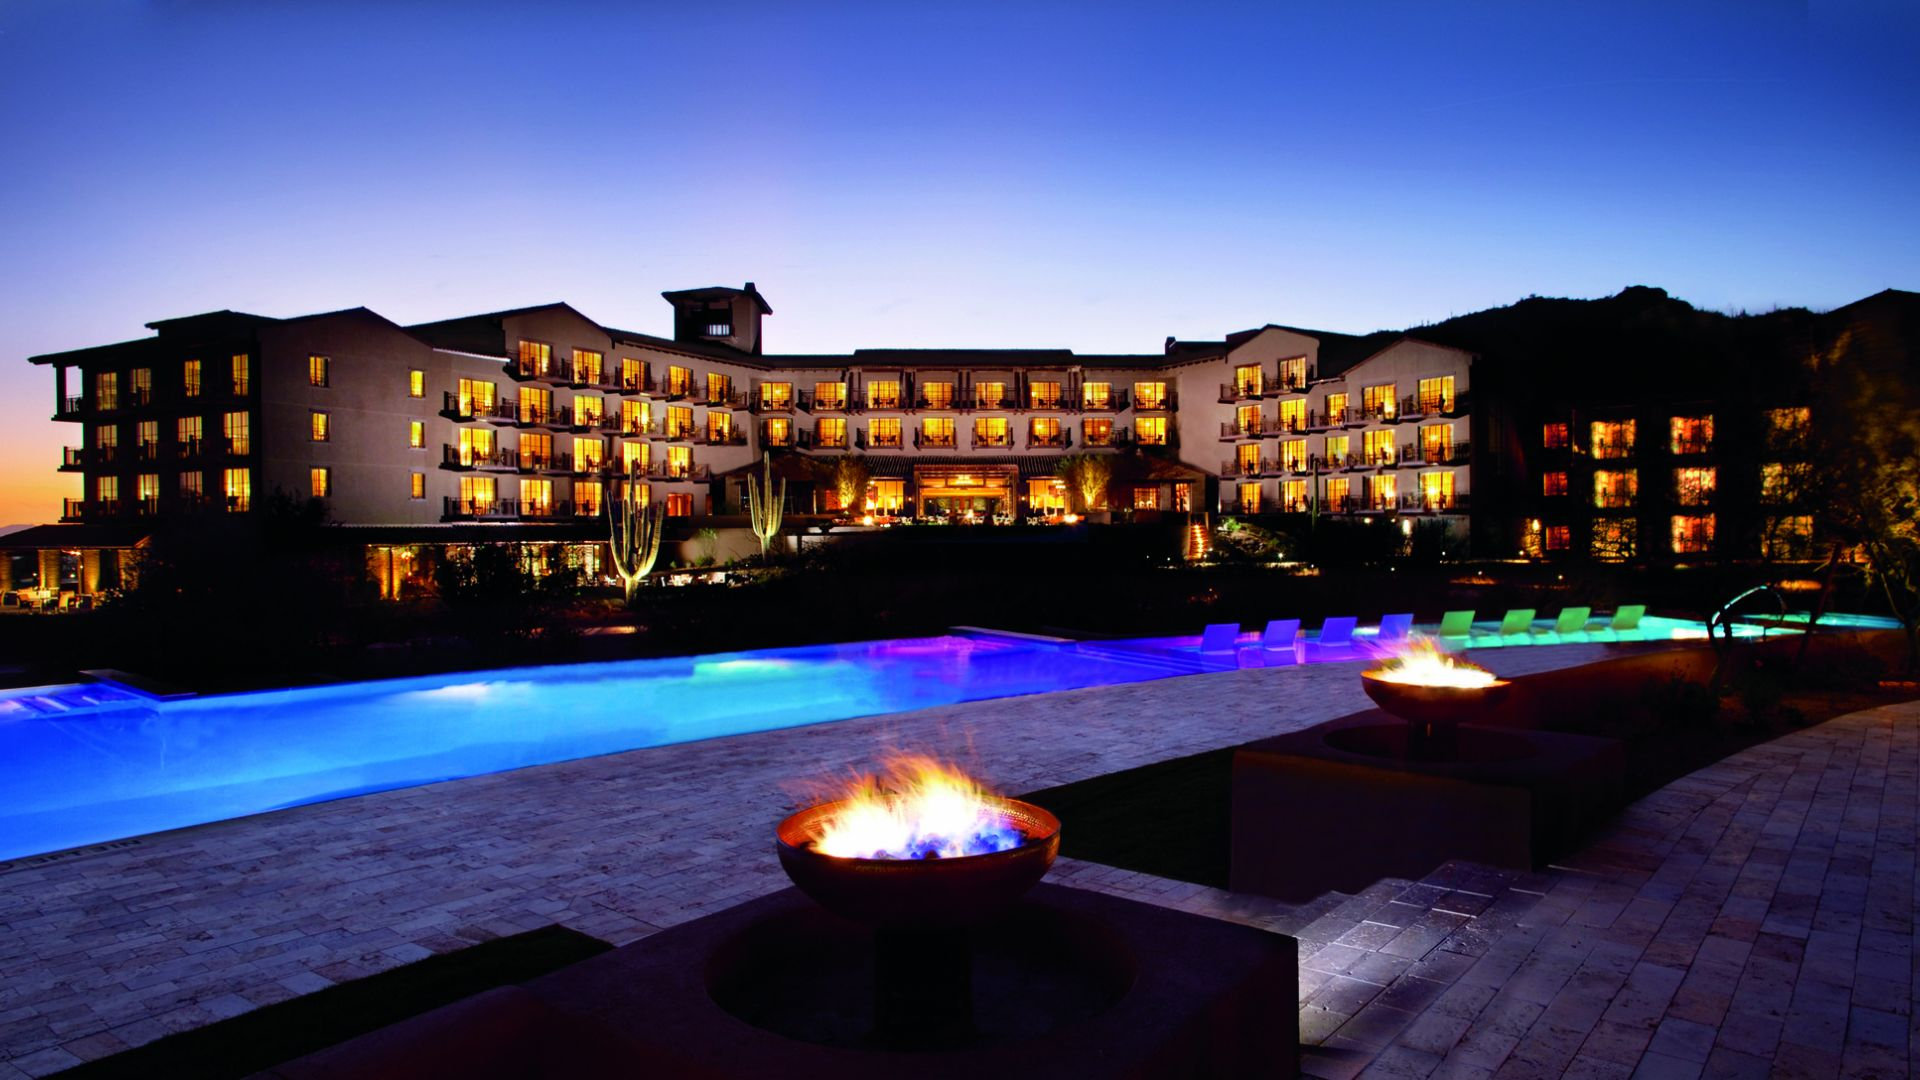 The Ritz Carlton, Dove Mountain